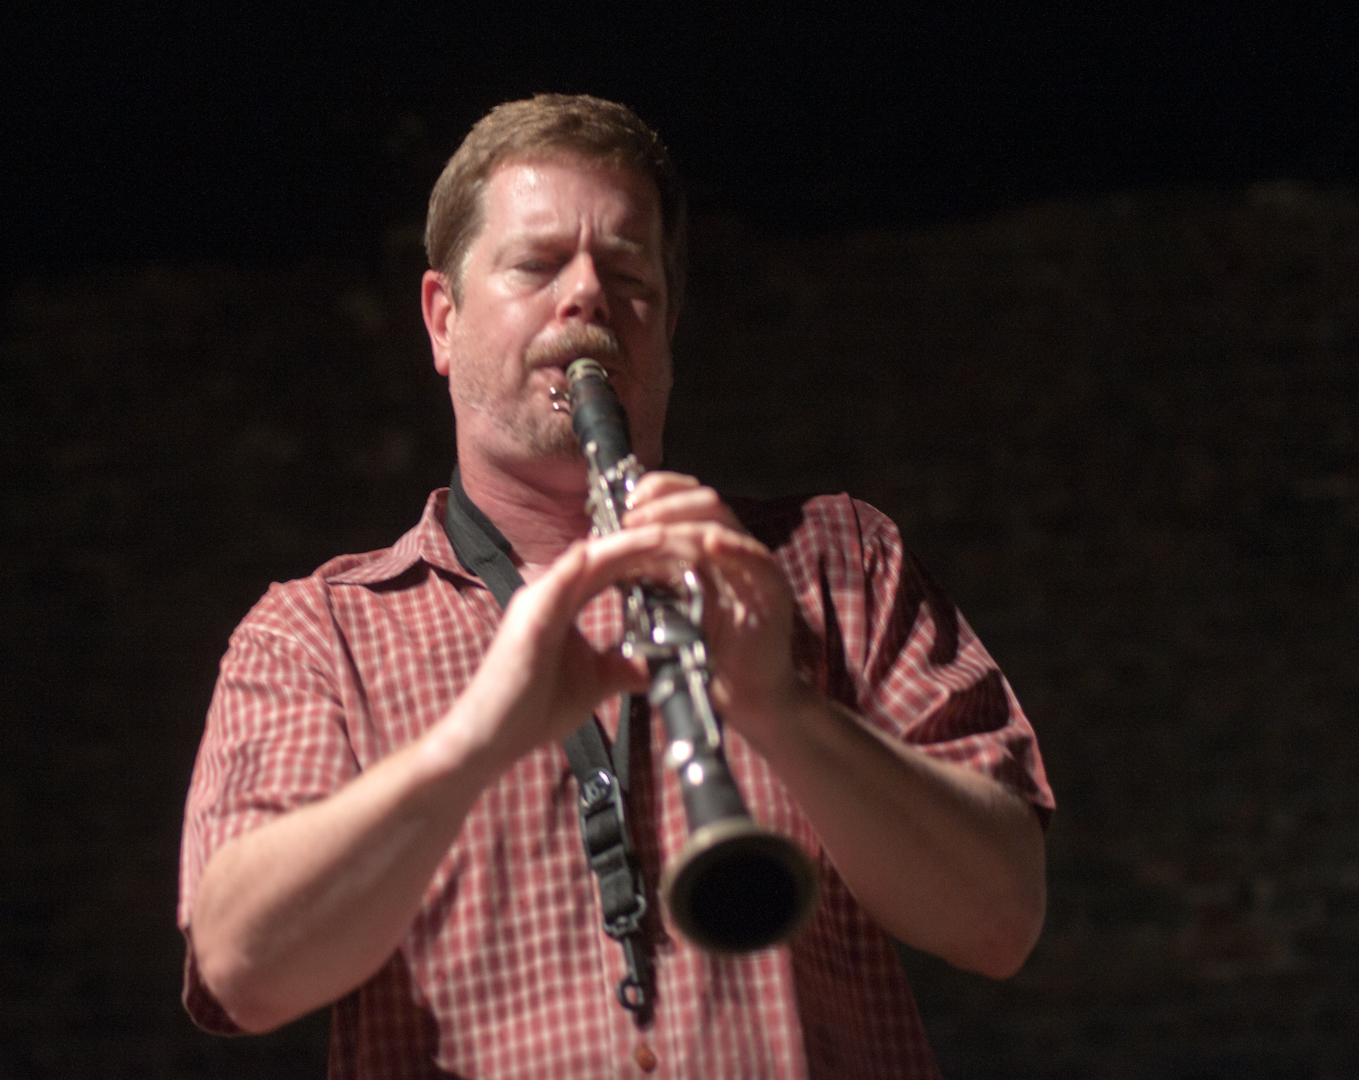 Ken Vandermark with Chad Taylor at the Stone